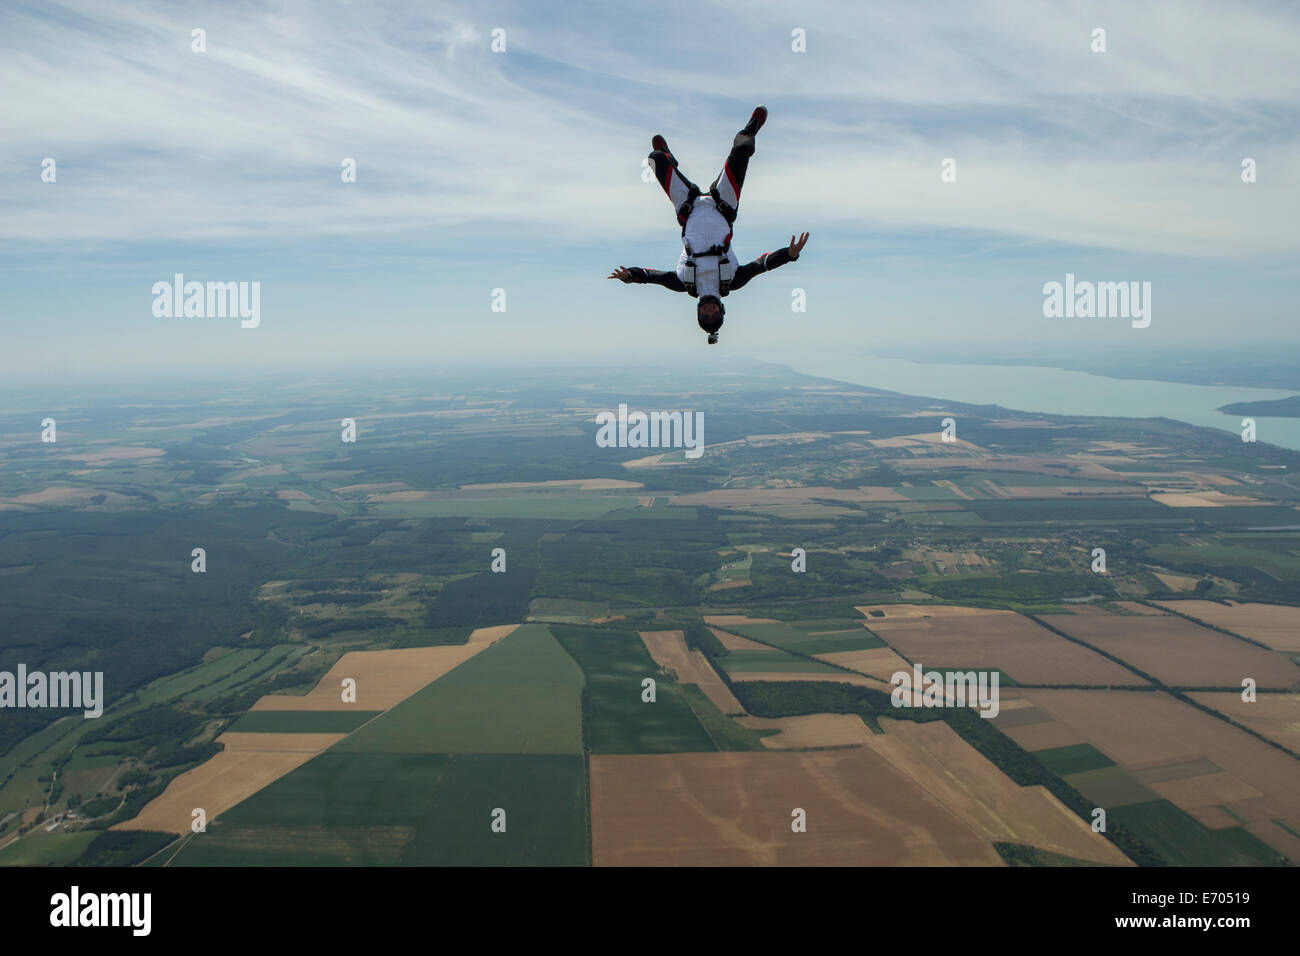 Male skydiver freeflying upside down above Siofok, Somogy, Hungary - Stock Image